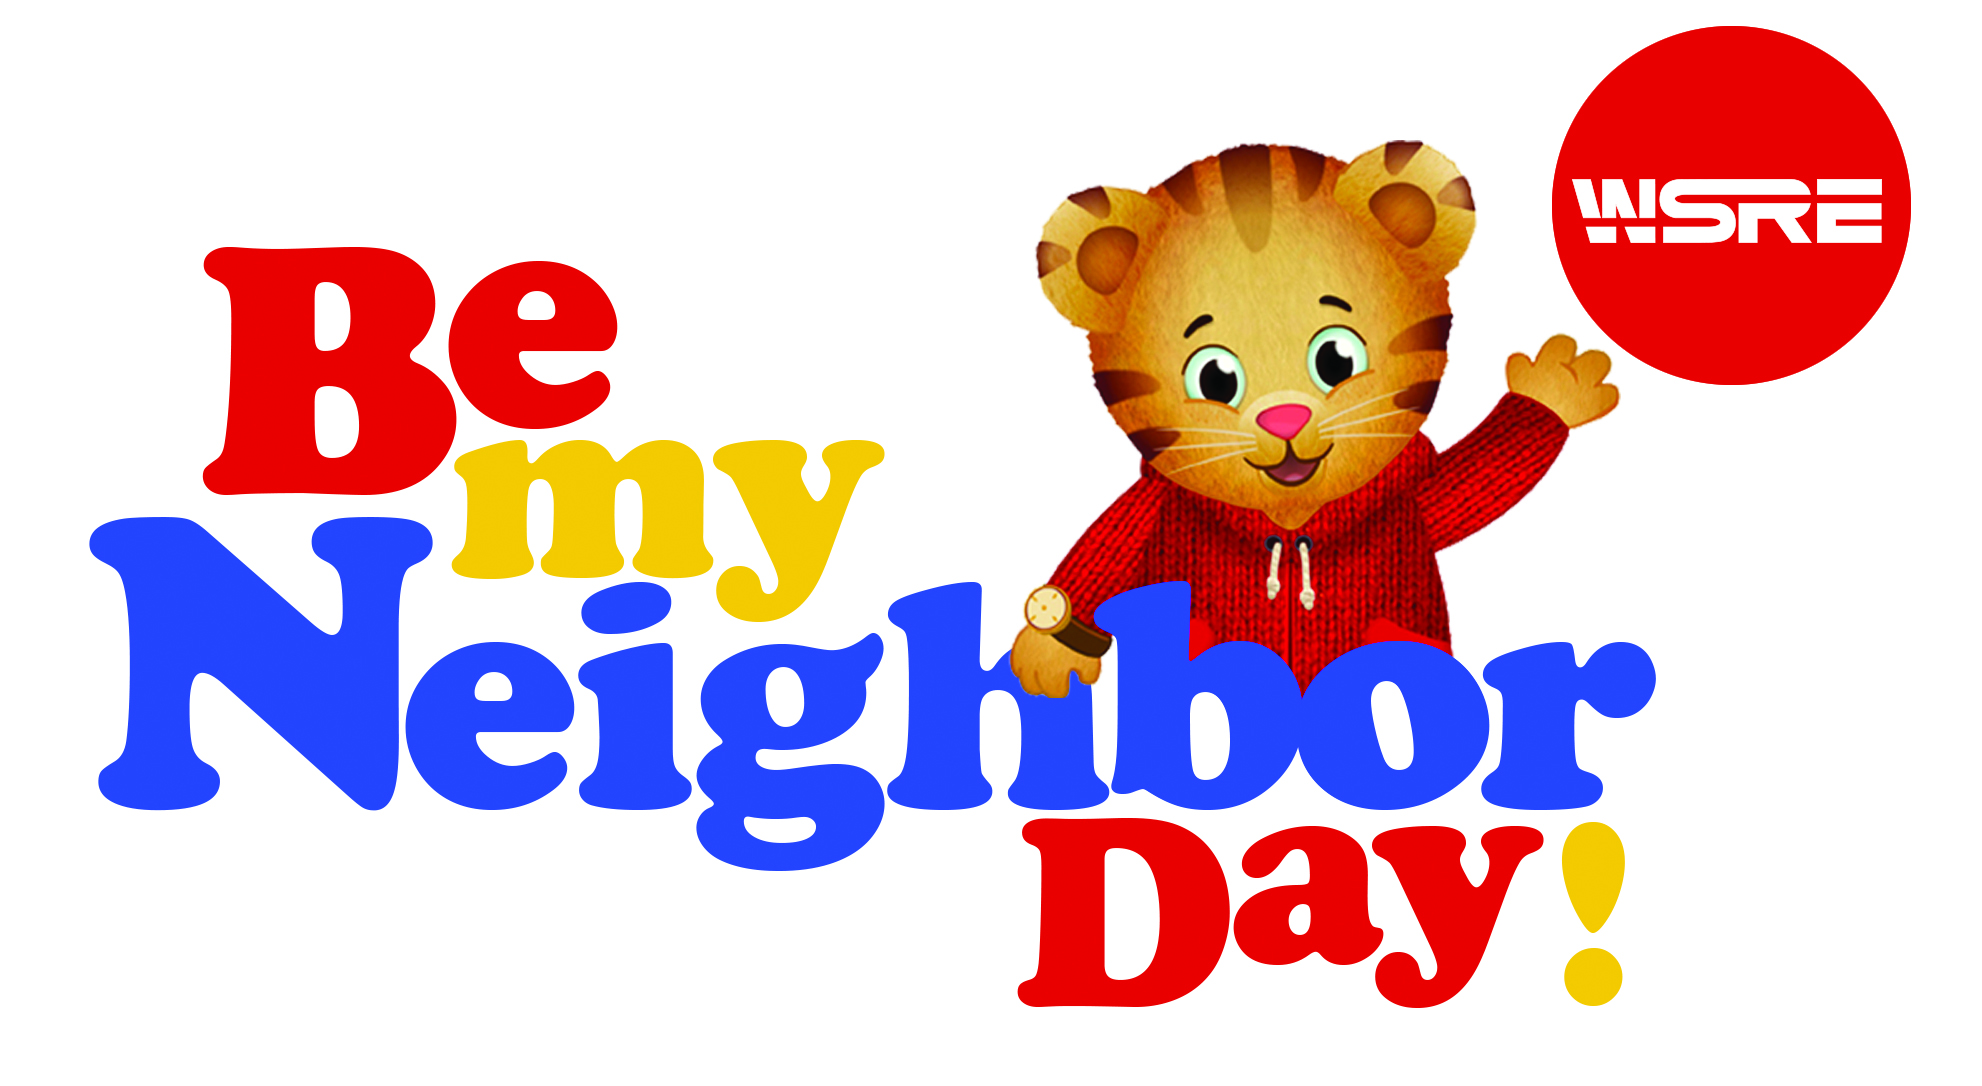 Picture of Daniel Tiger from PBS Children's Programming